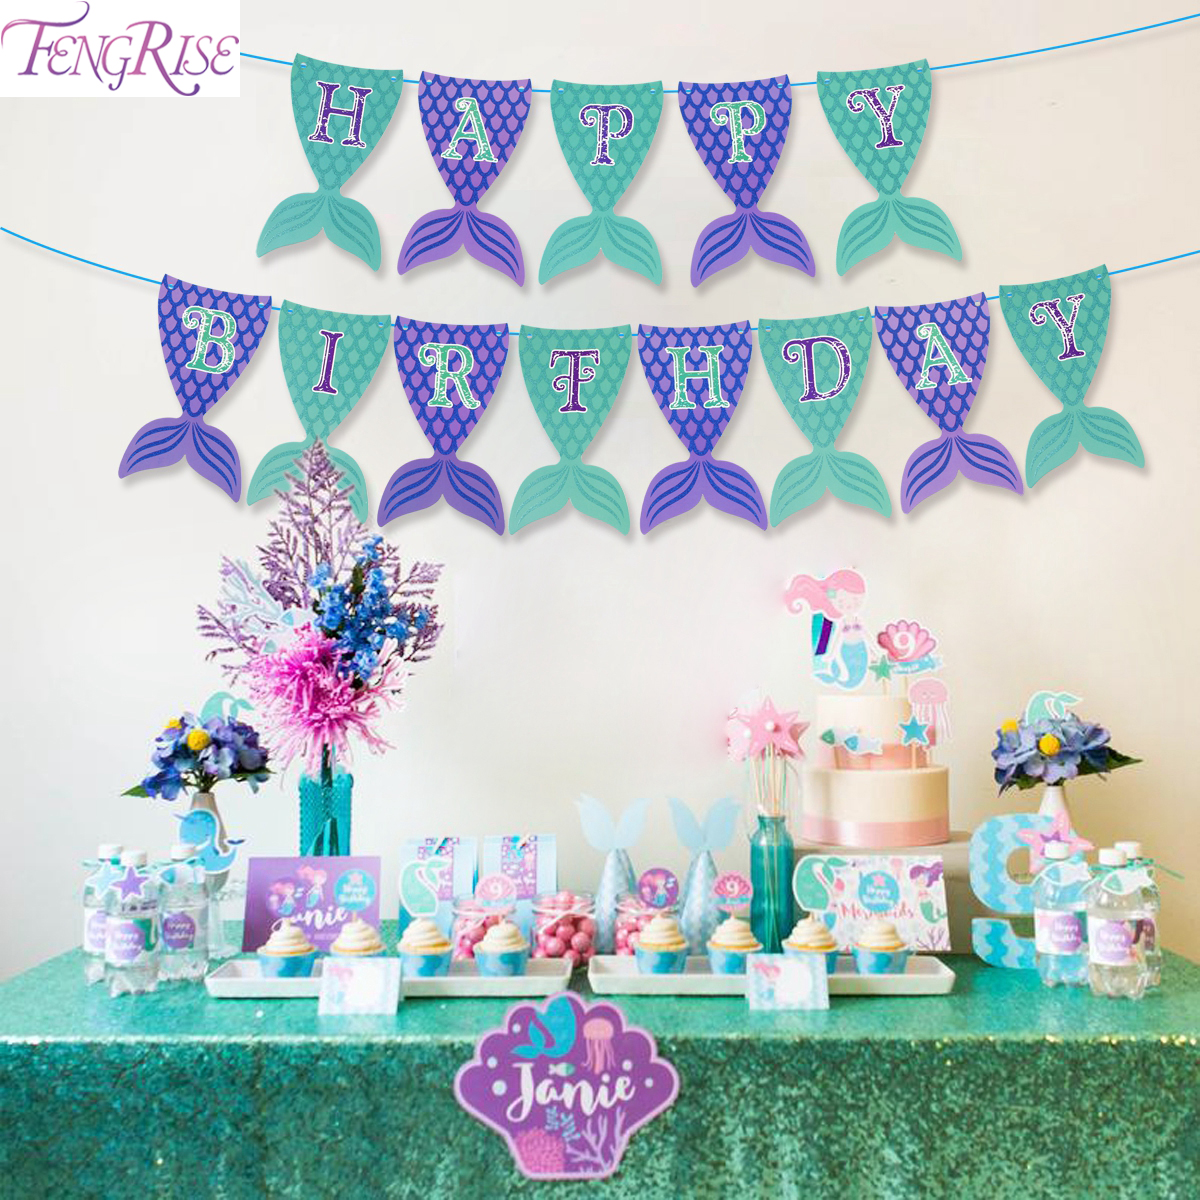 FENGRISE Little Mermaid Birthday Party Supplies Tablecloth Themed Parties Decorations For Table Balloons Decor